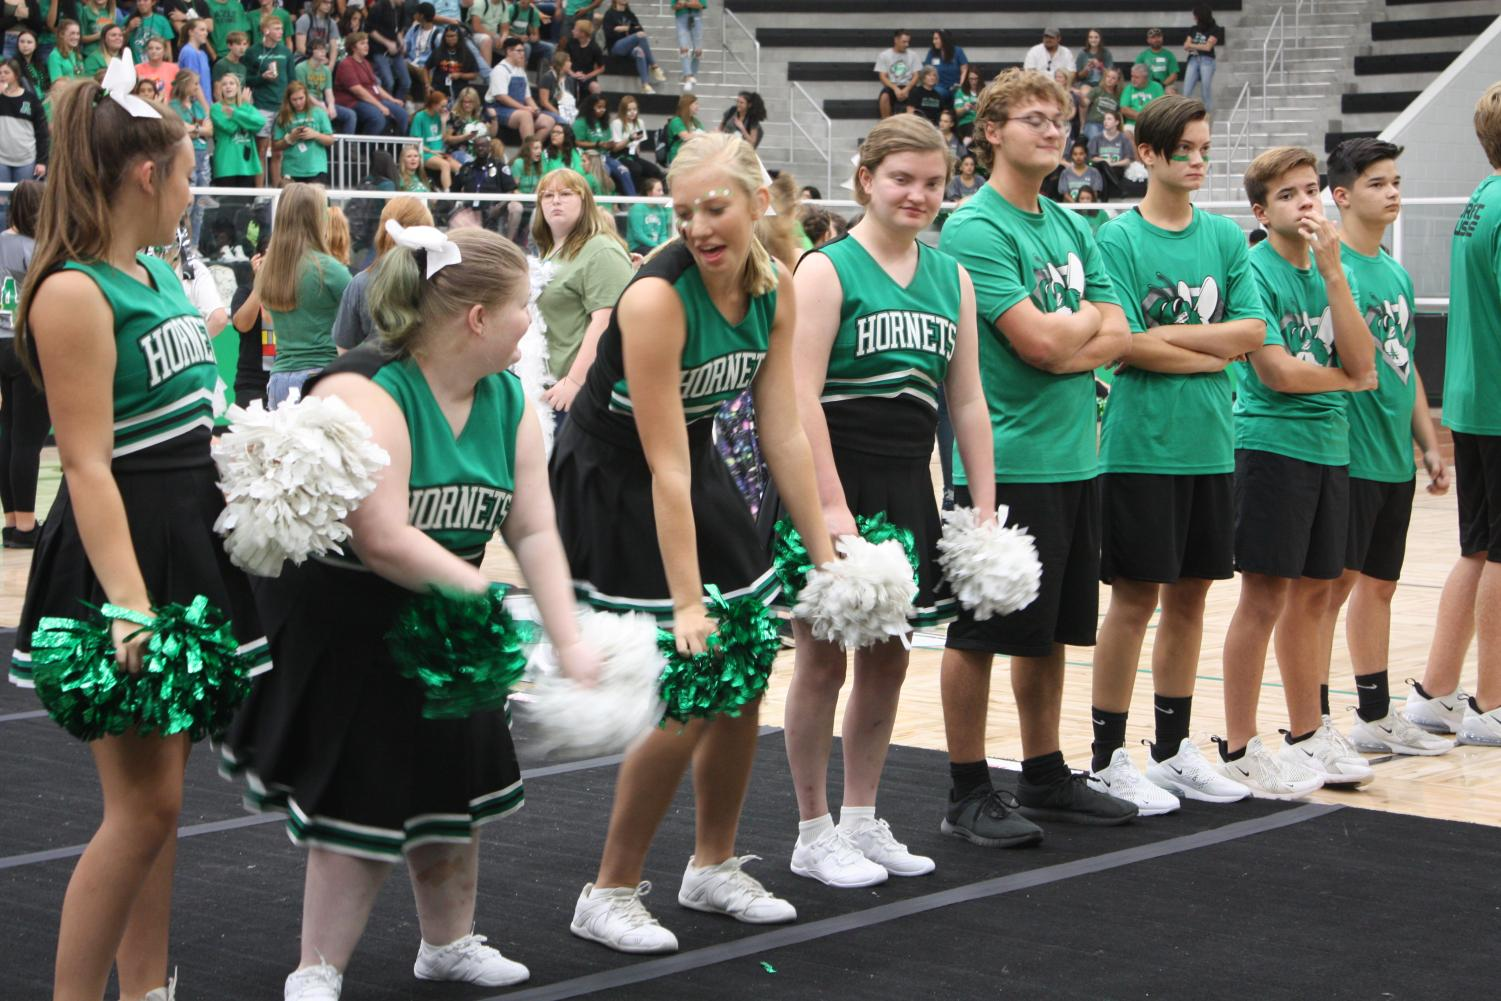 Sparkle Effect and Hornet Muscle at Homecoming pep rally Sep 20